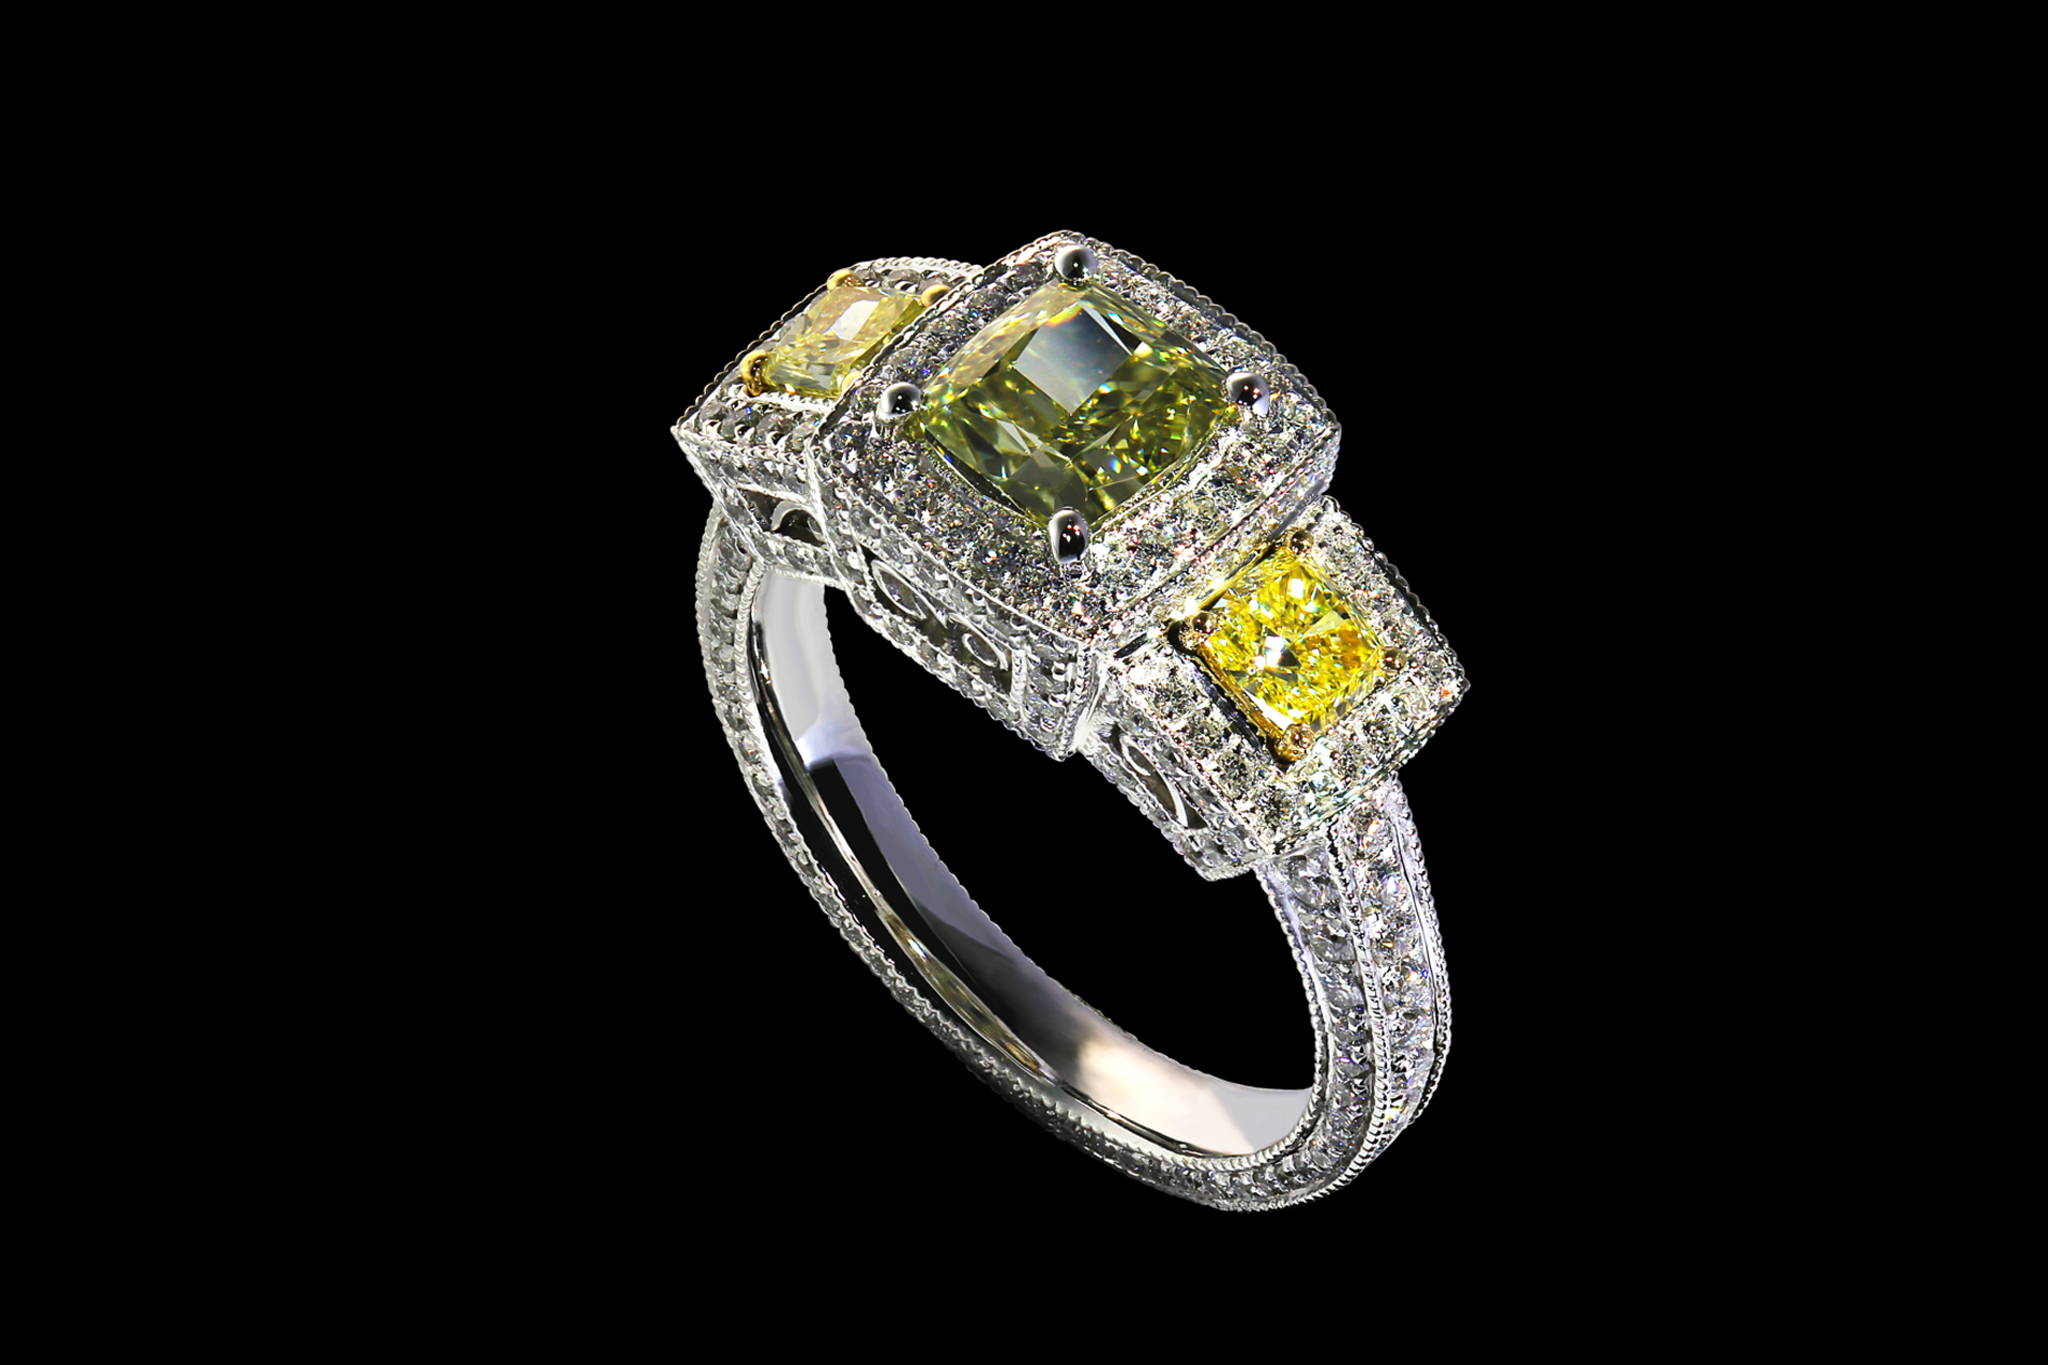 Highly Detailed Natural Colored Diamond RIng